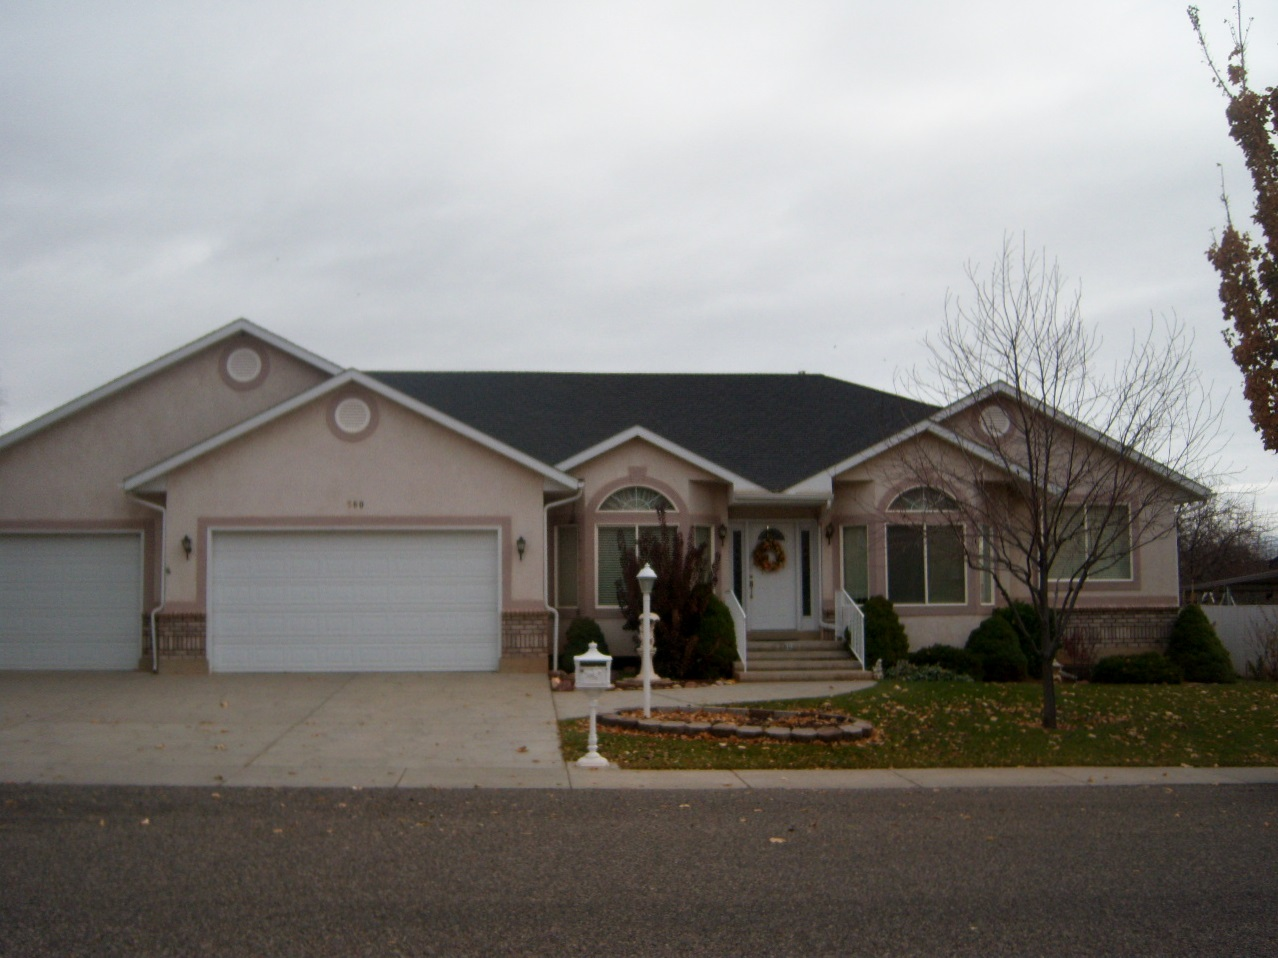 560 NORTH 500 WEST, Richfield, UT 84701